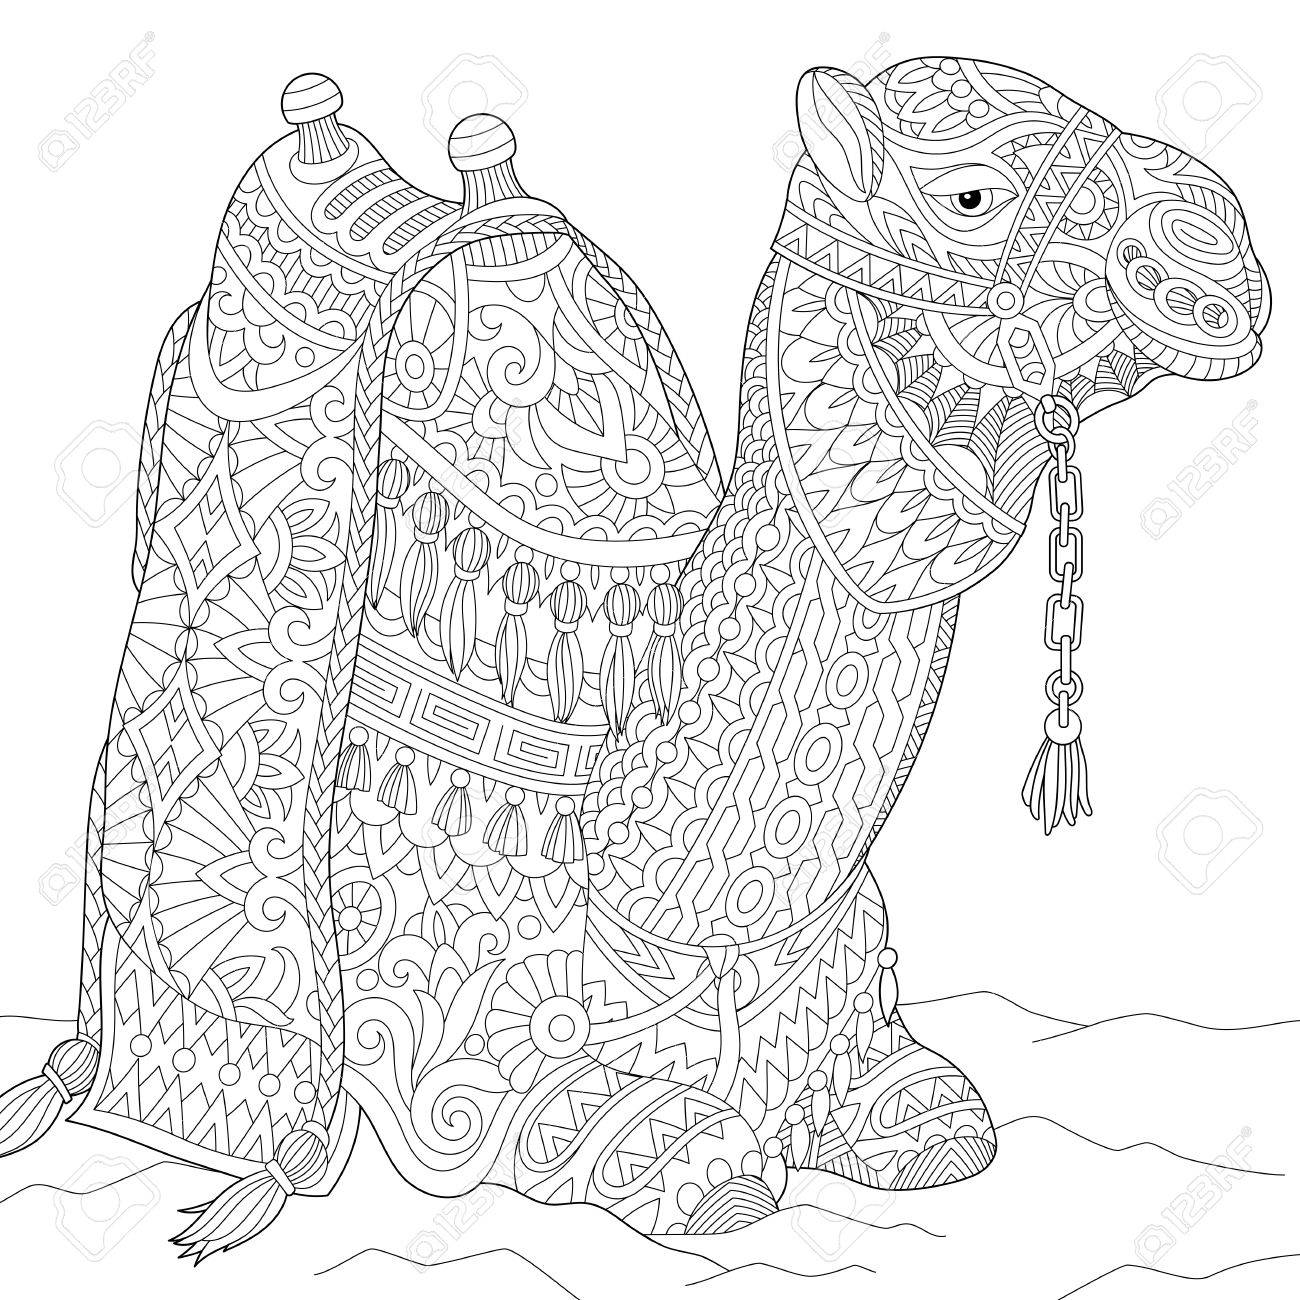 Stylized Cartoon Camel Isolated On White Background Freehand Sketch For Adult Anti Stress Coloring